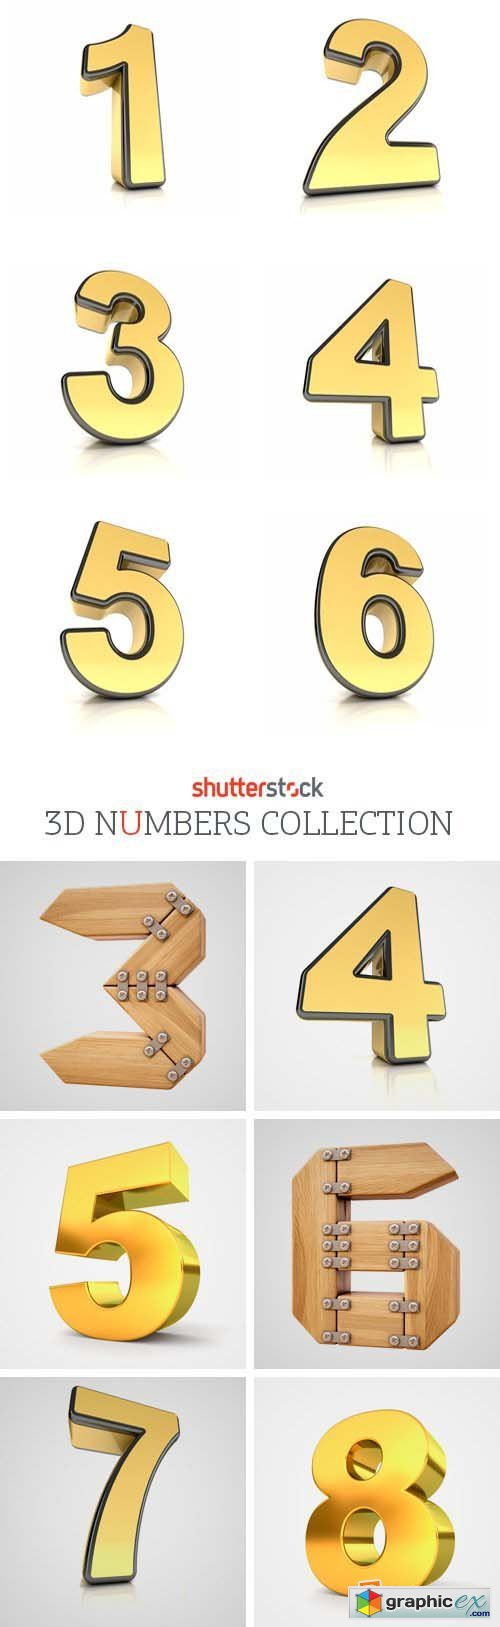 Amazing SS - 3D Numbers Collection, 30xJPGs